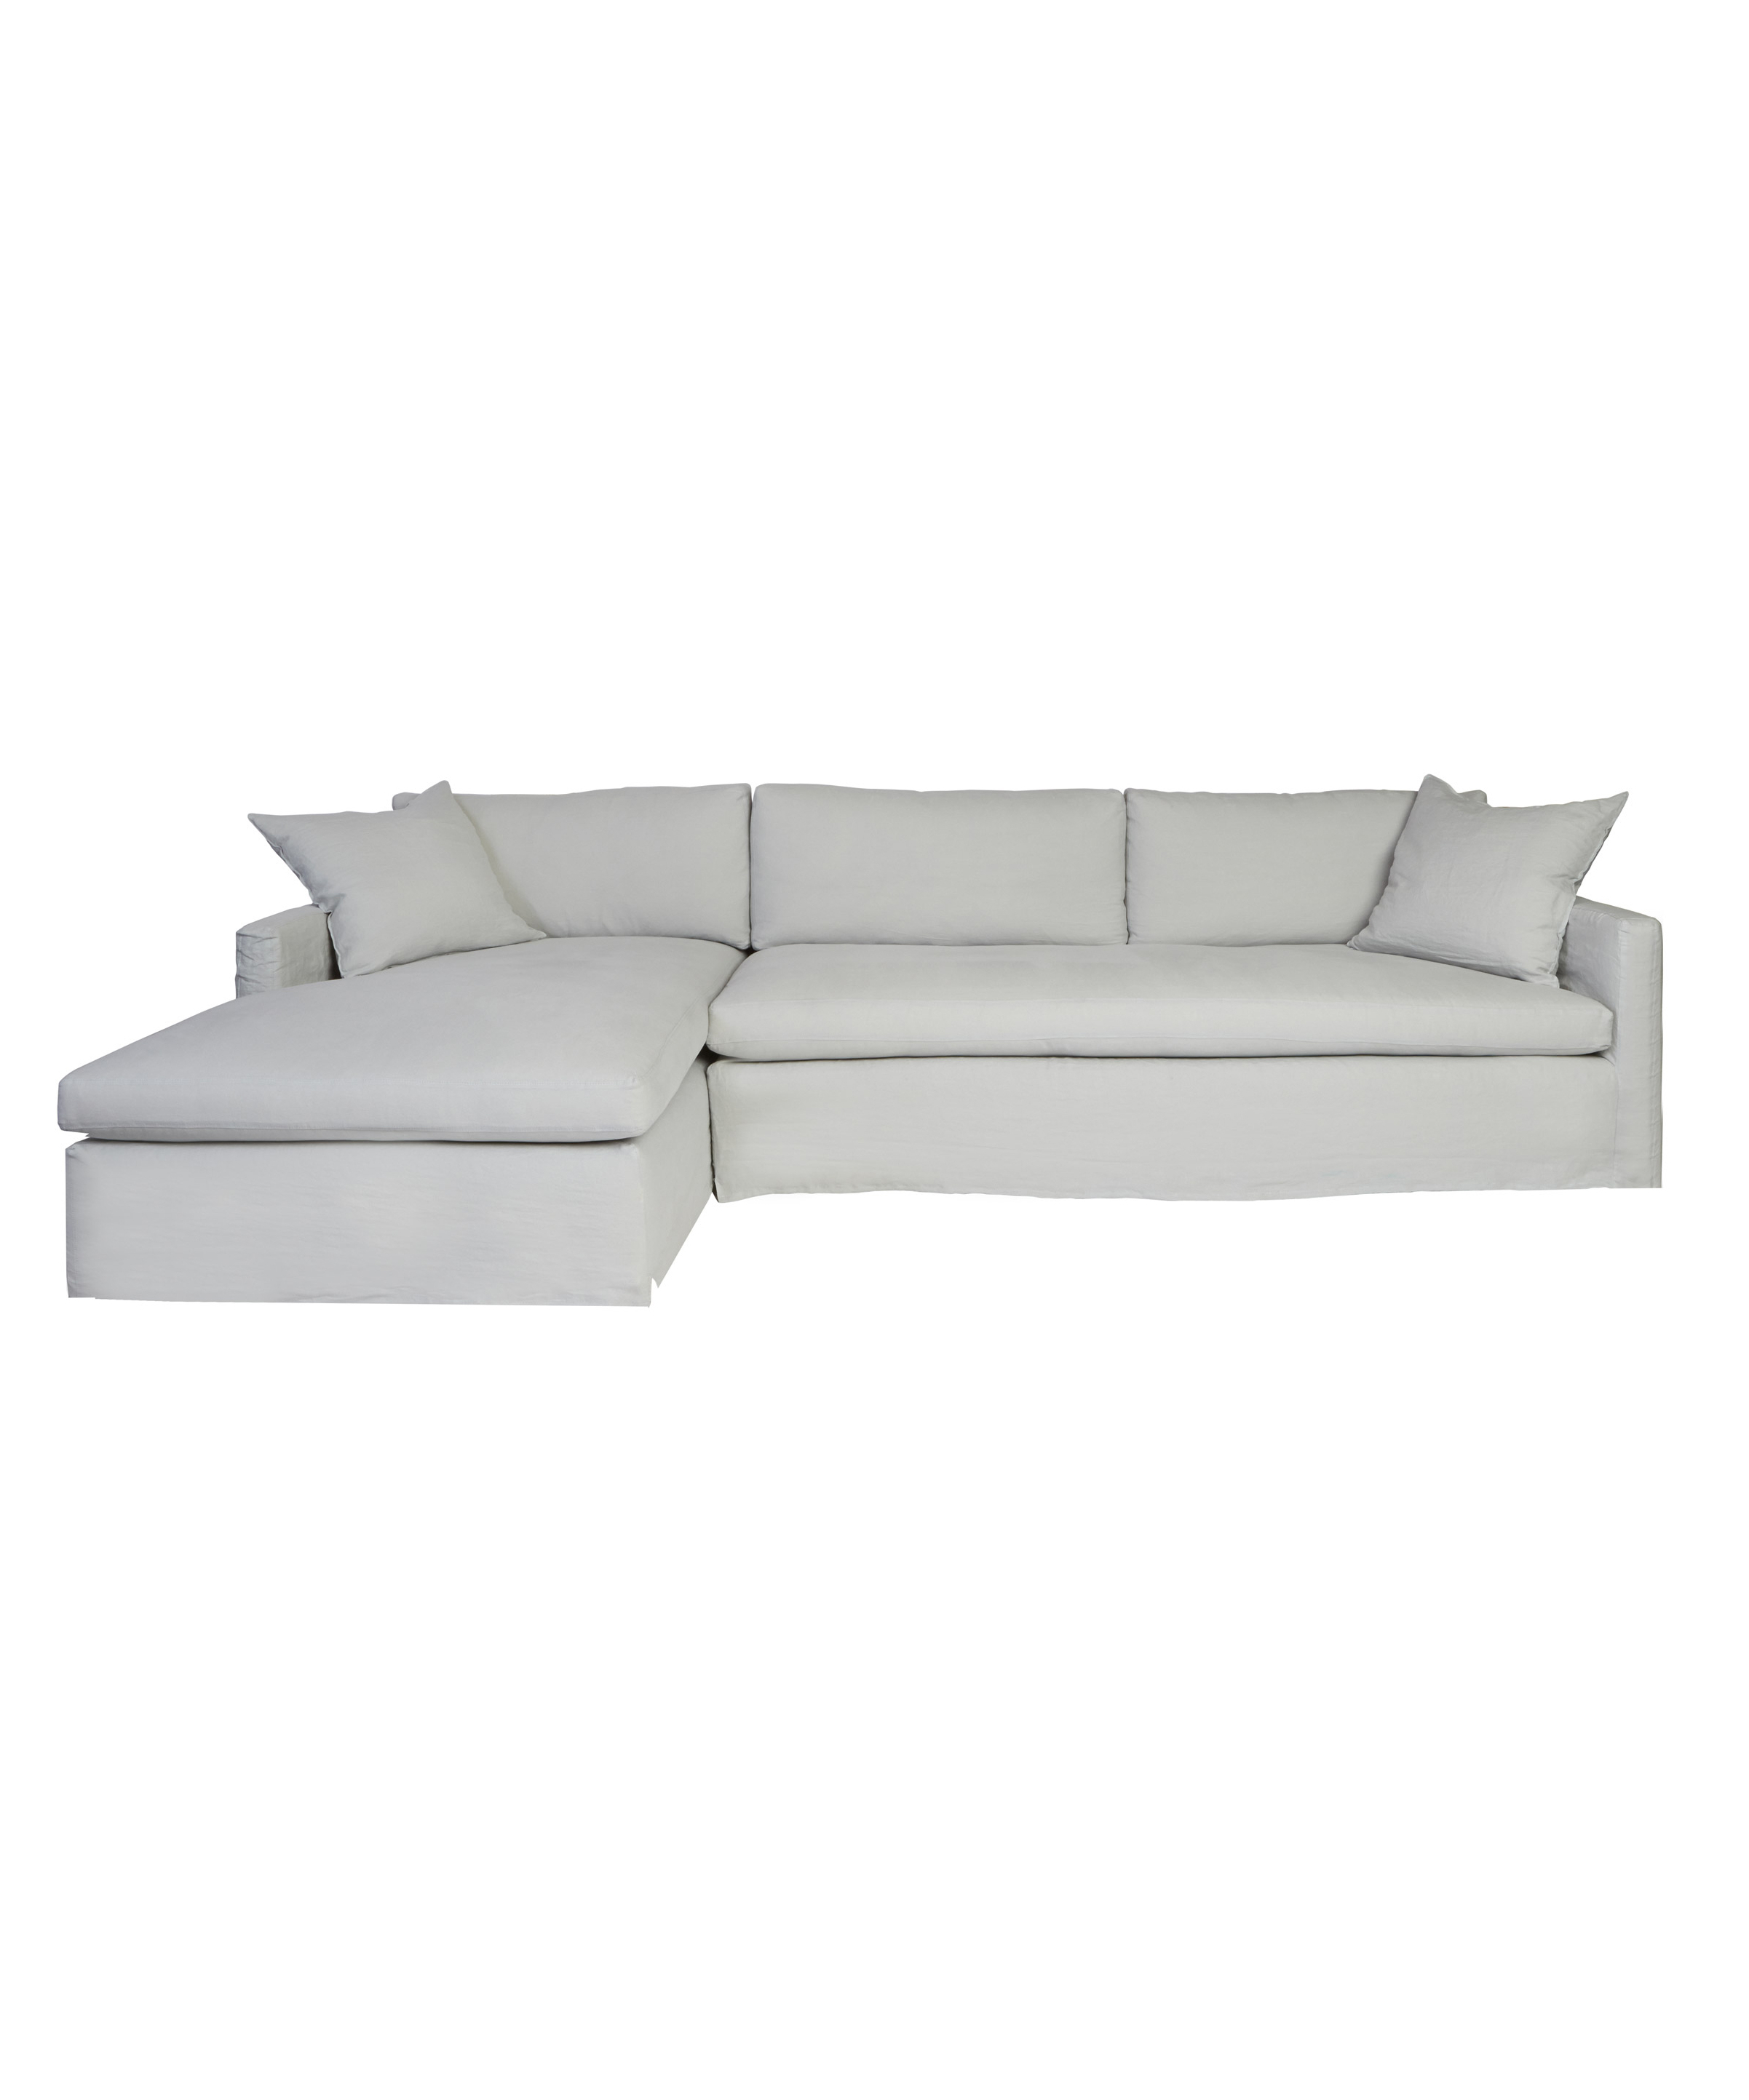 Louis 2 Piece Sectional (Gallery 11 of 20)